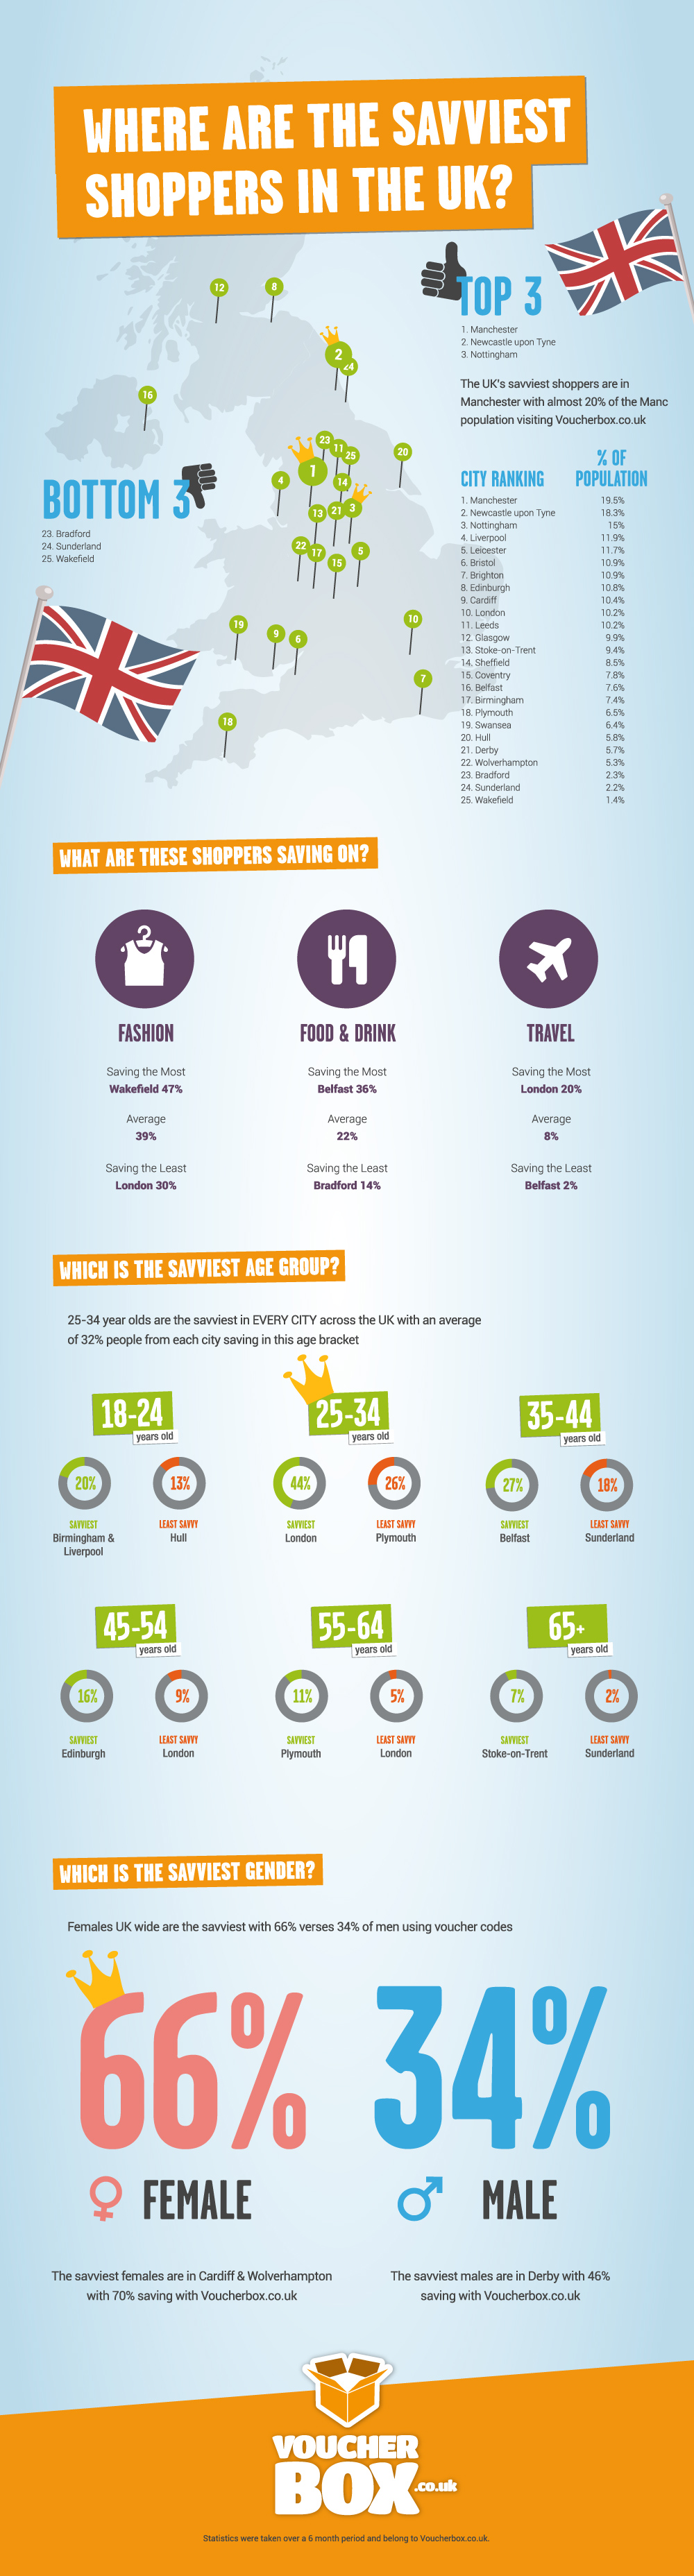 151027 infografik savvy uk r02 Where are the Savviest Shoppers in the UK